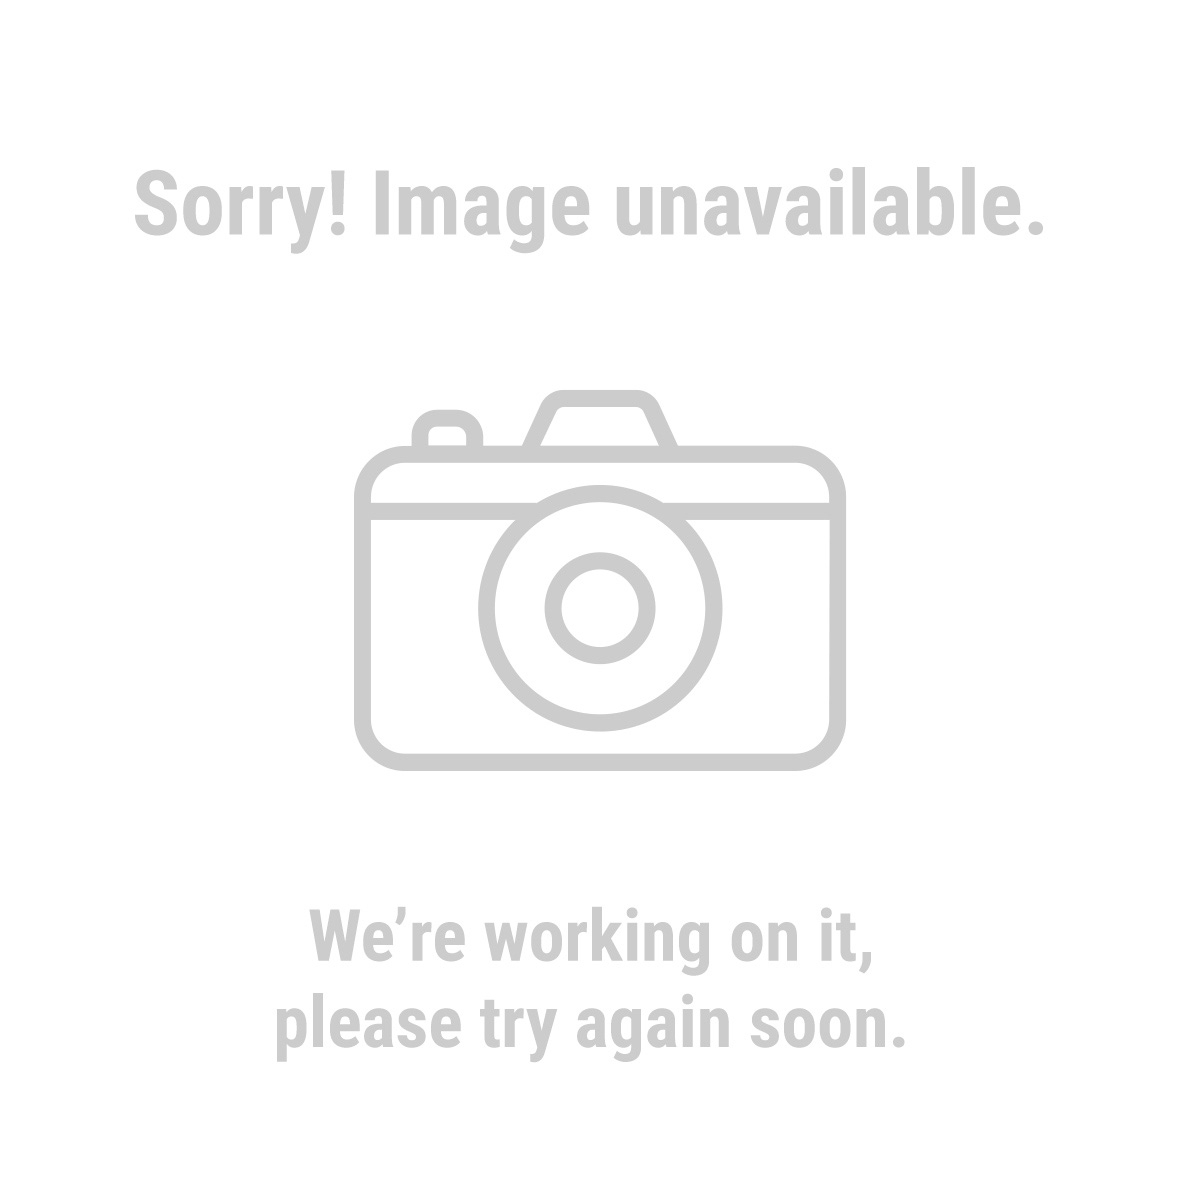 HFT 45069 25 Ft. Outdoor Extension Cord, Orange